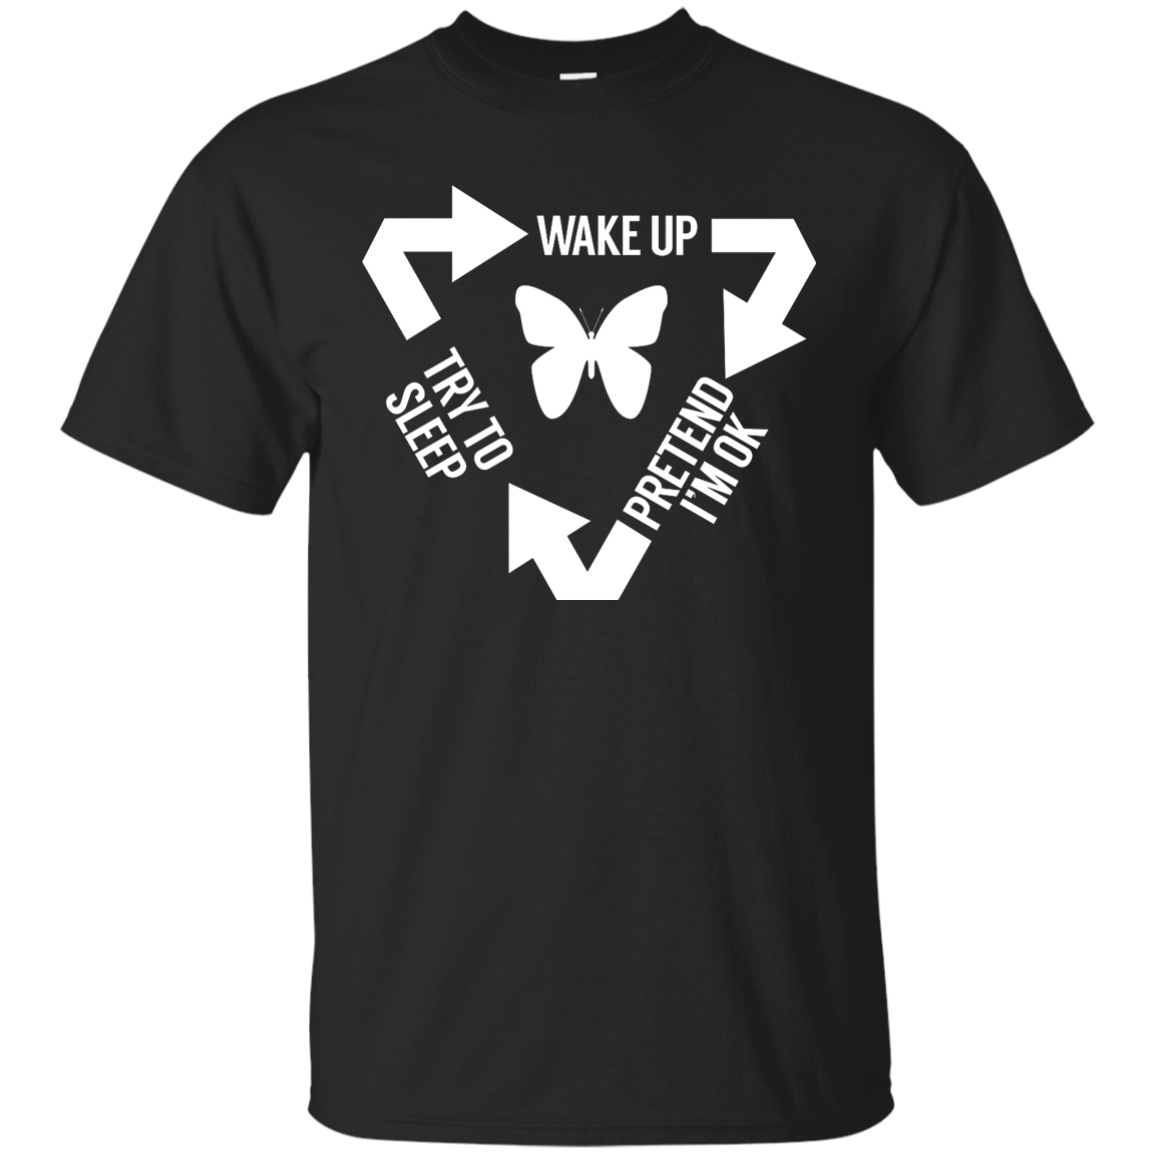 Chronic Illness Cycle Unisex Shirt - The Unchargeables